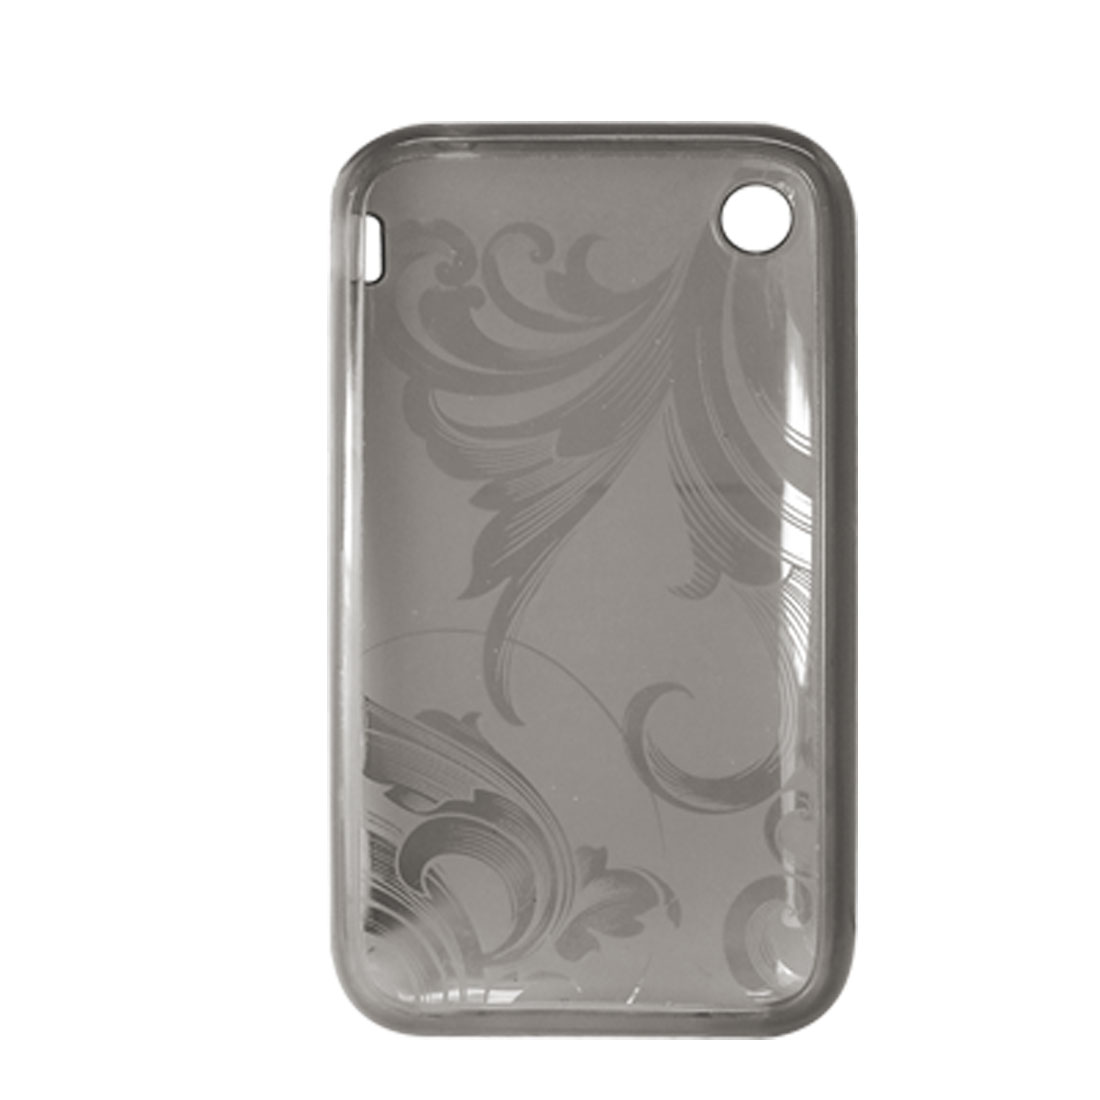 Flower Design Soft Plastic Case Grey Cover for Apple iPhone 3G